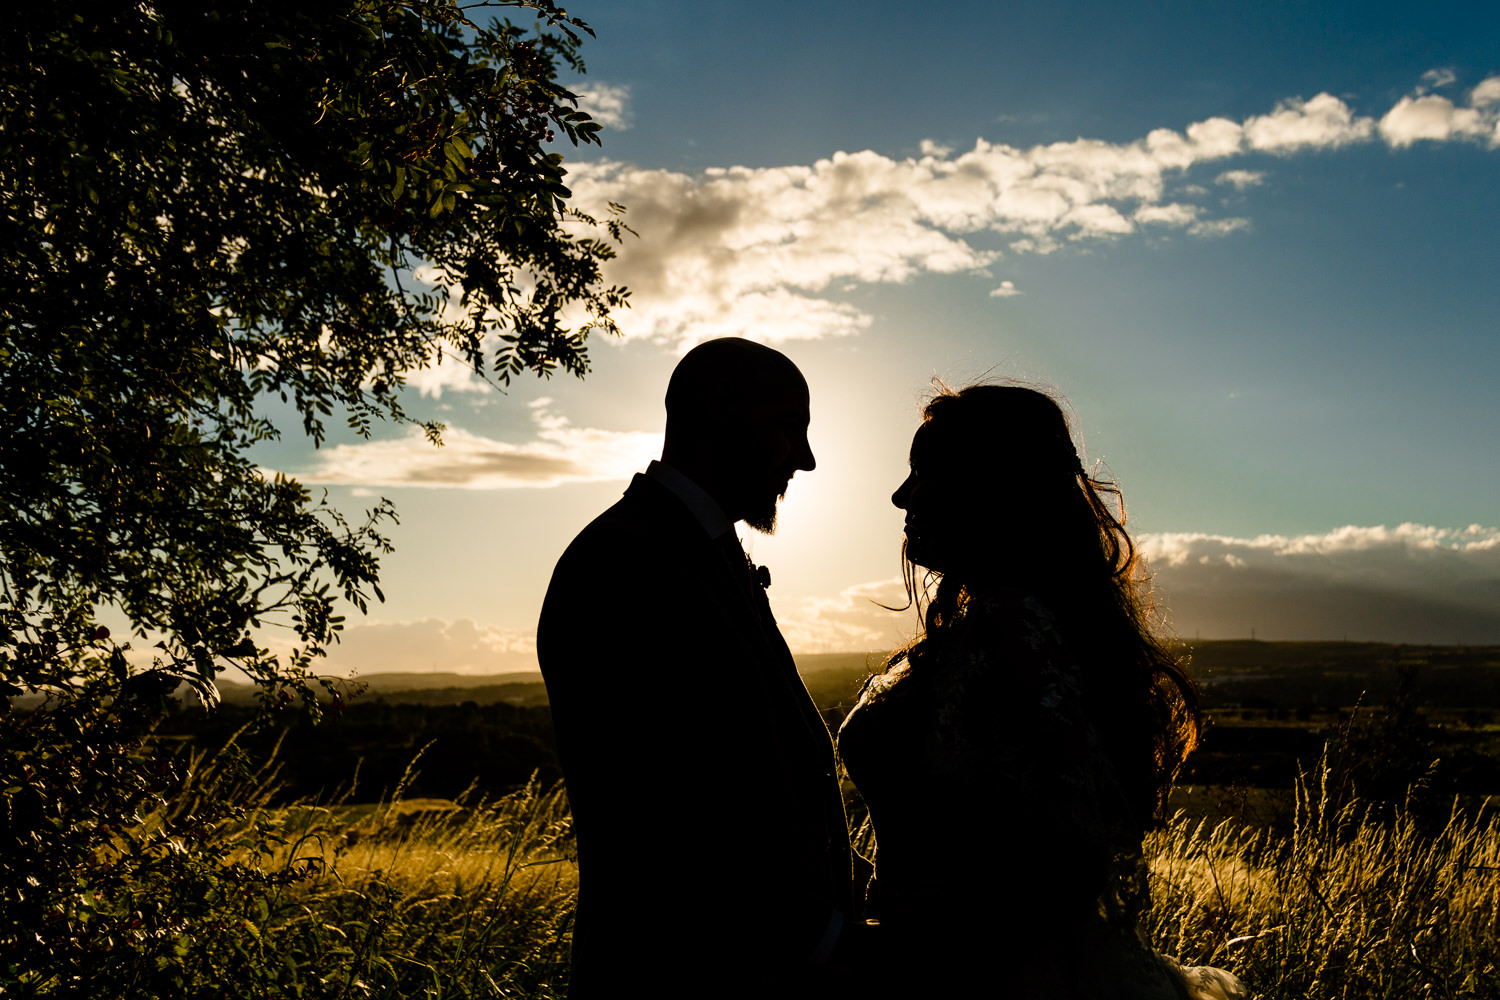 Colourful Rochdale wedding photographer, a bride and groom silhouette at sunset